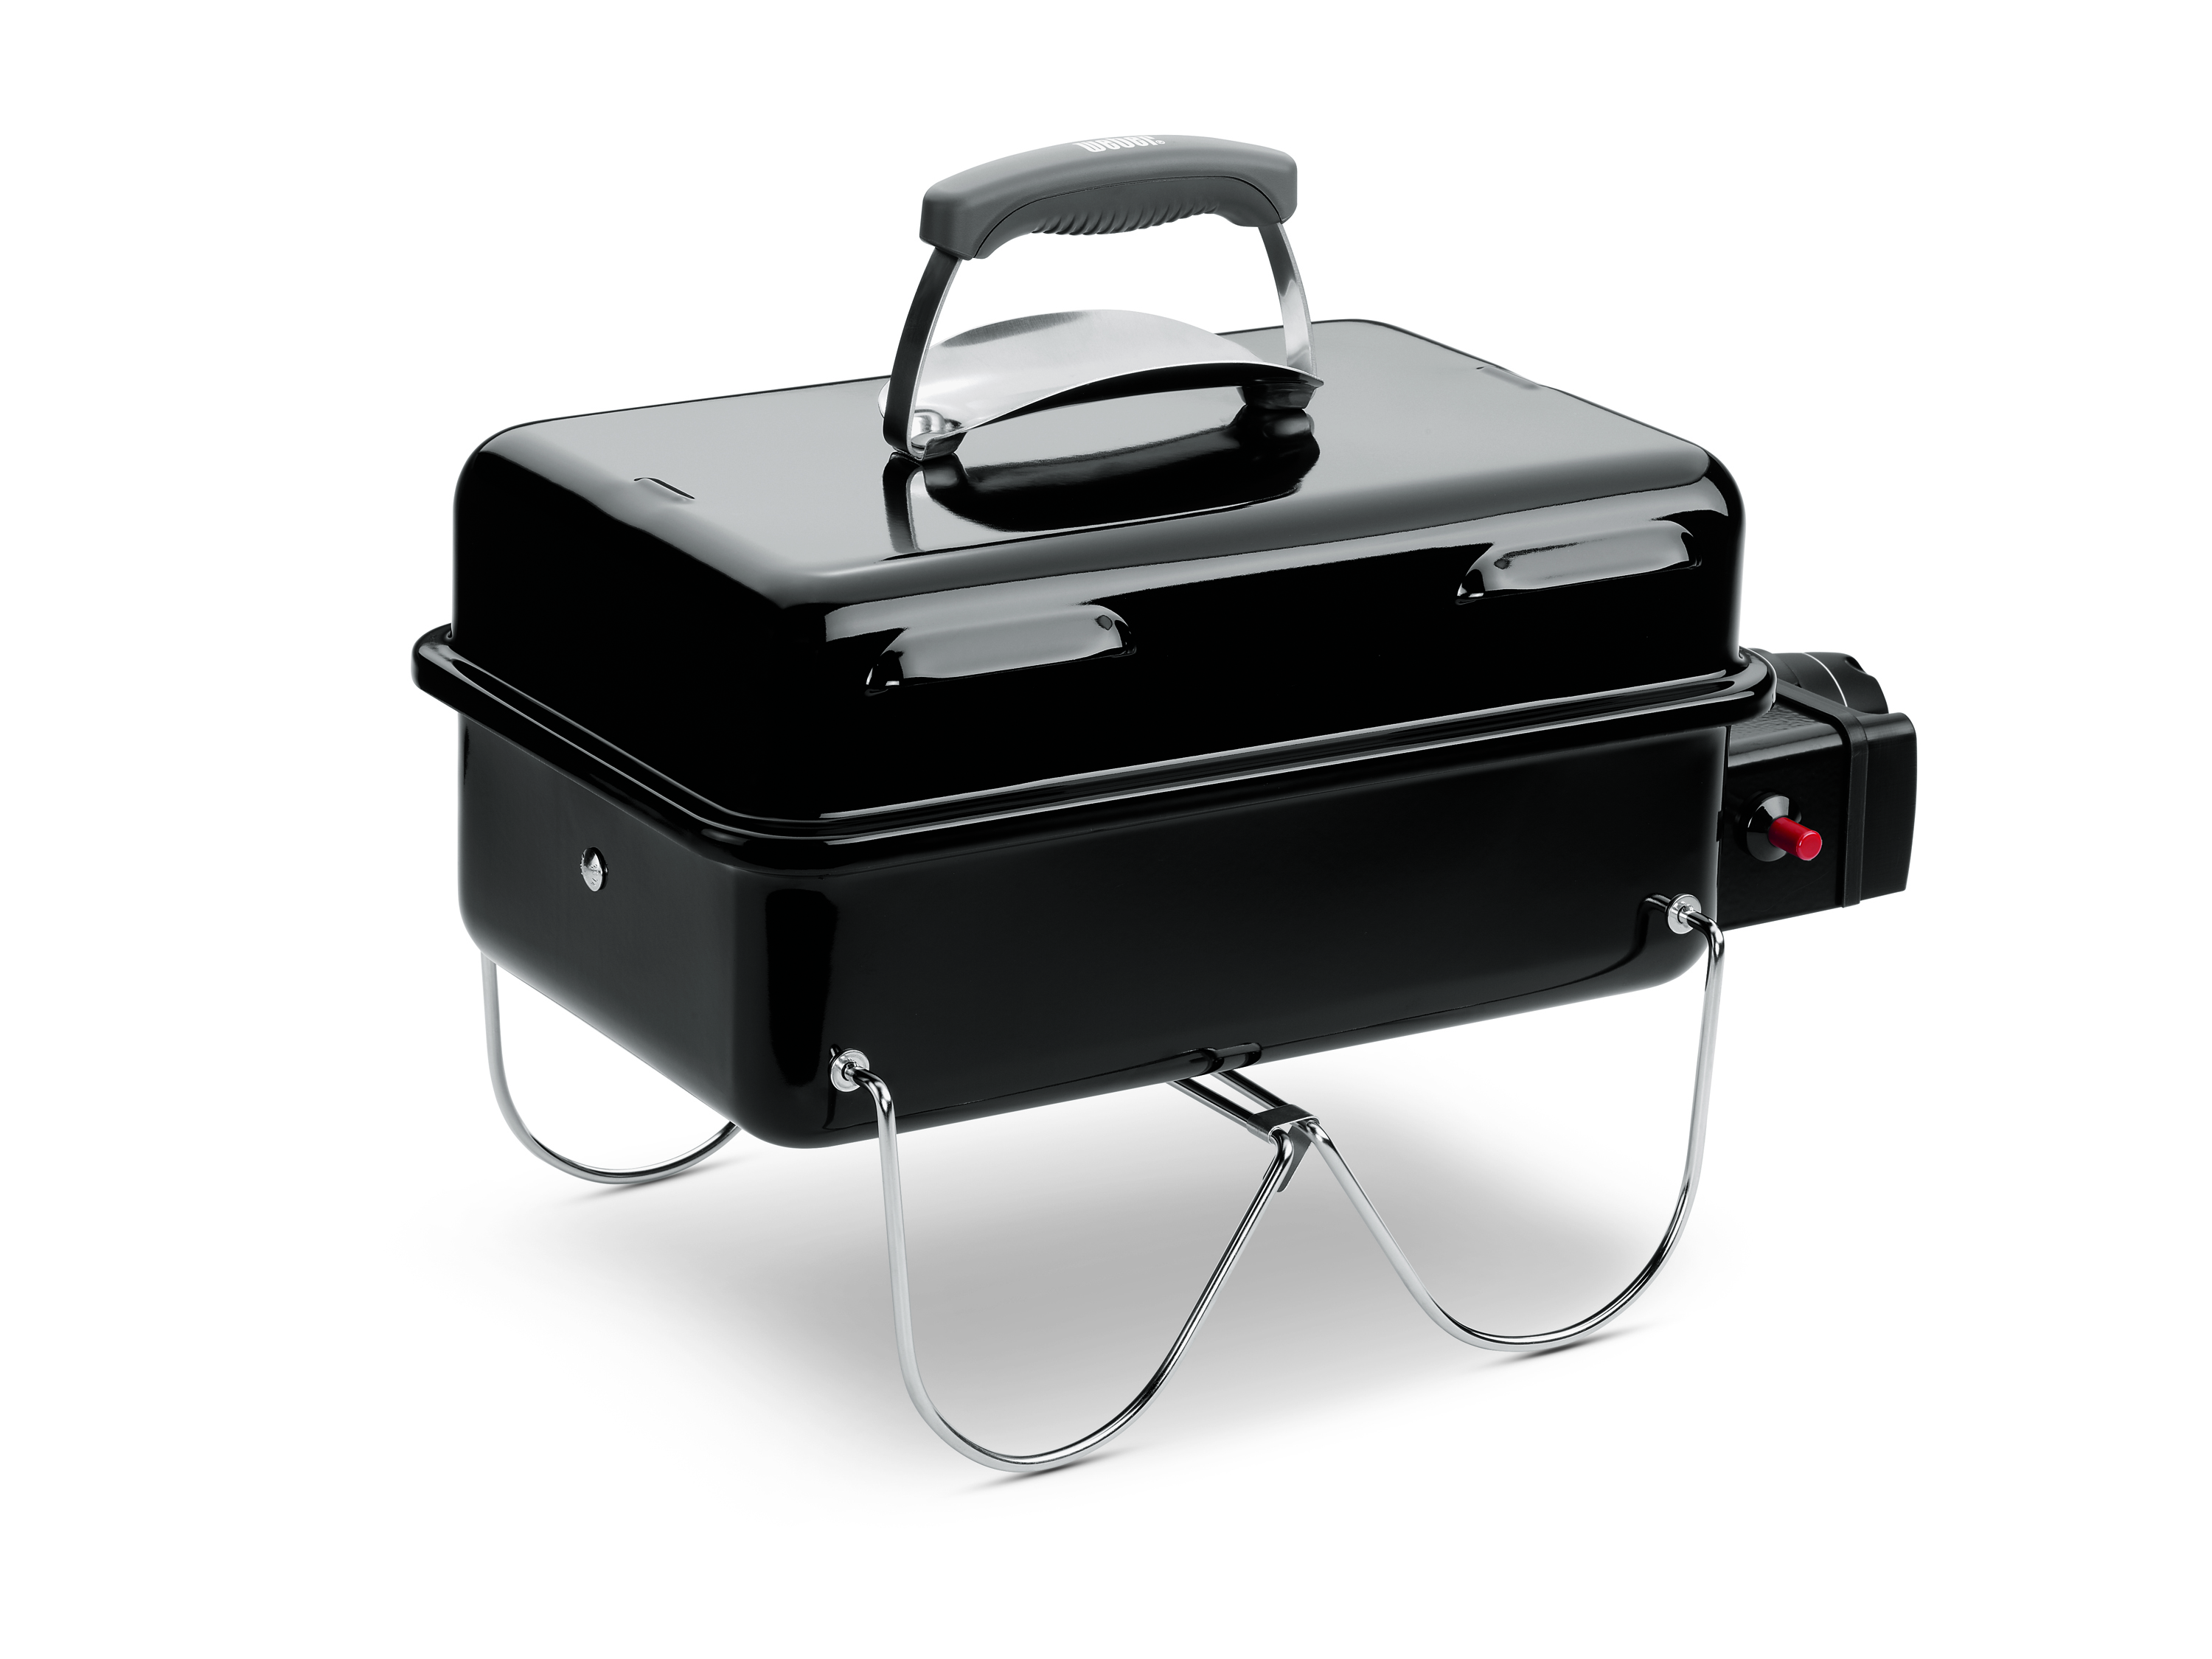 Weber Elektrogrill Gasgrill Vergleich : Weber go anywhere gas black go anywhere gasgrill grills